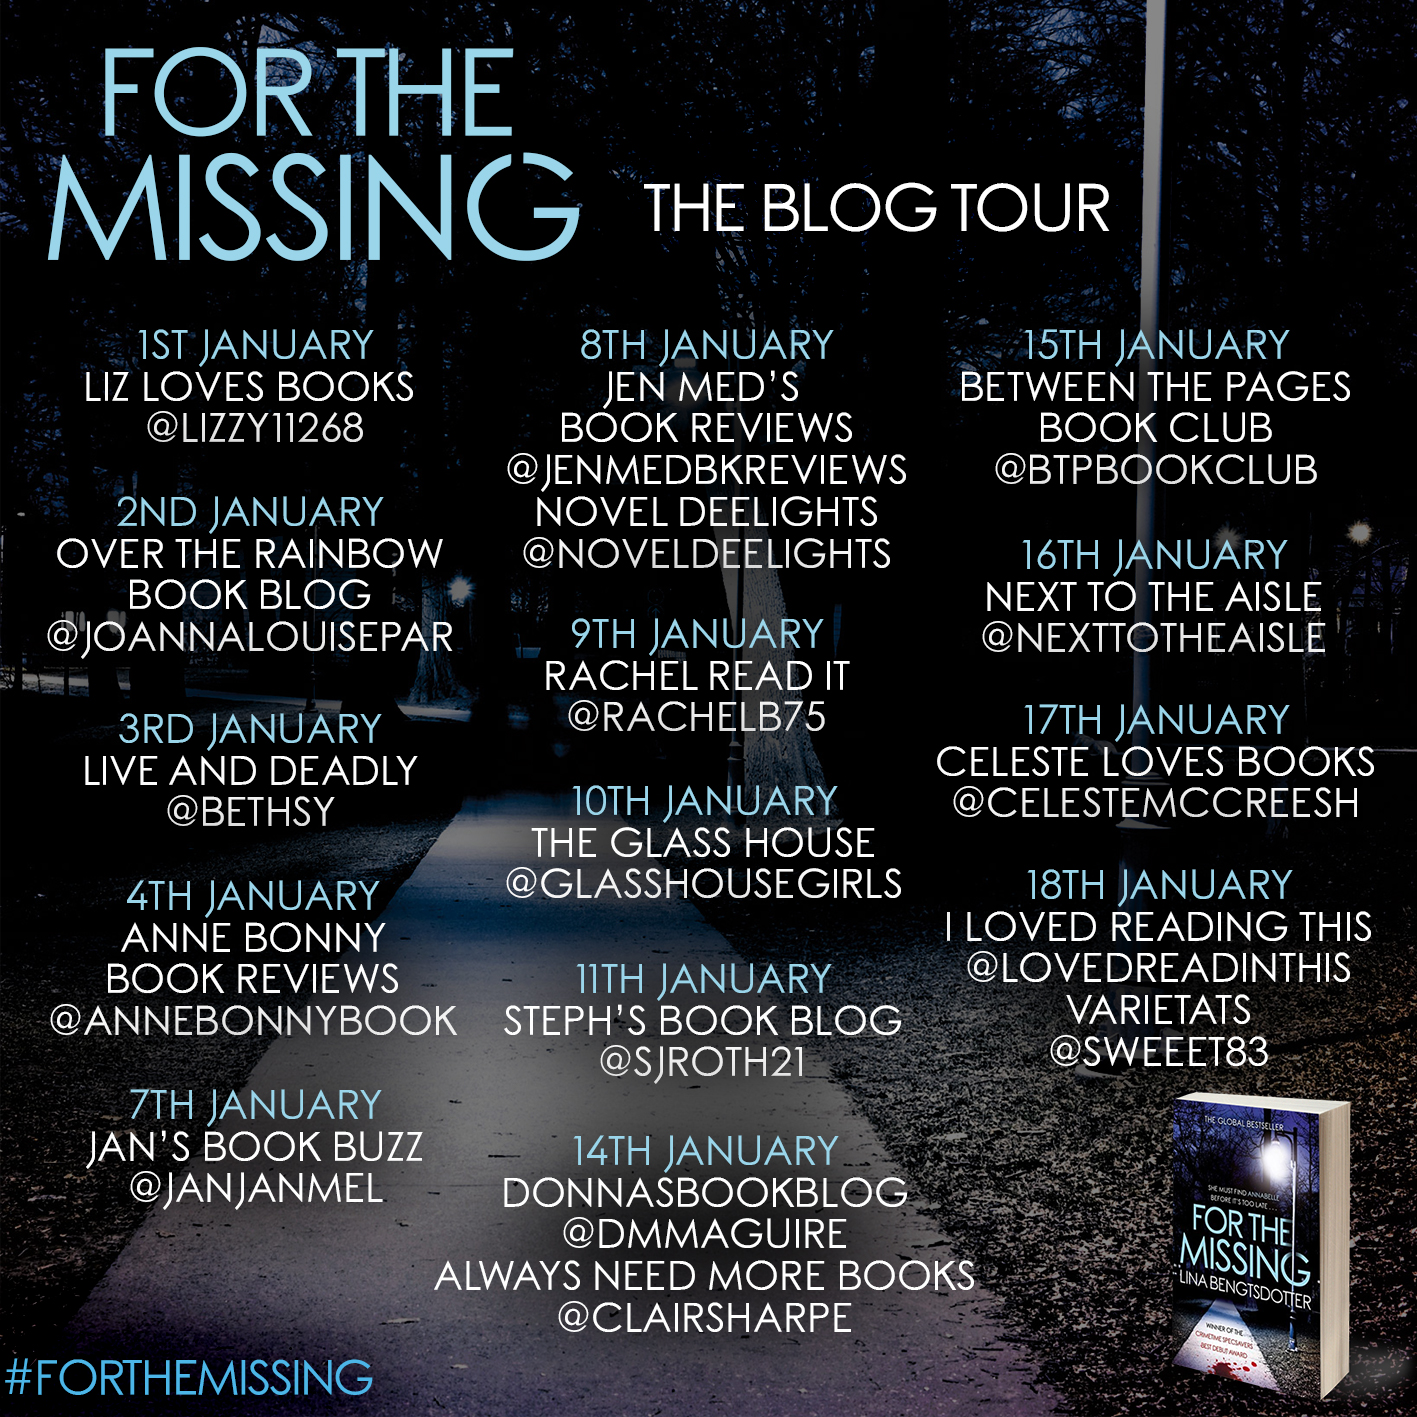 Blog tour dates and hosts